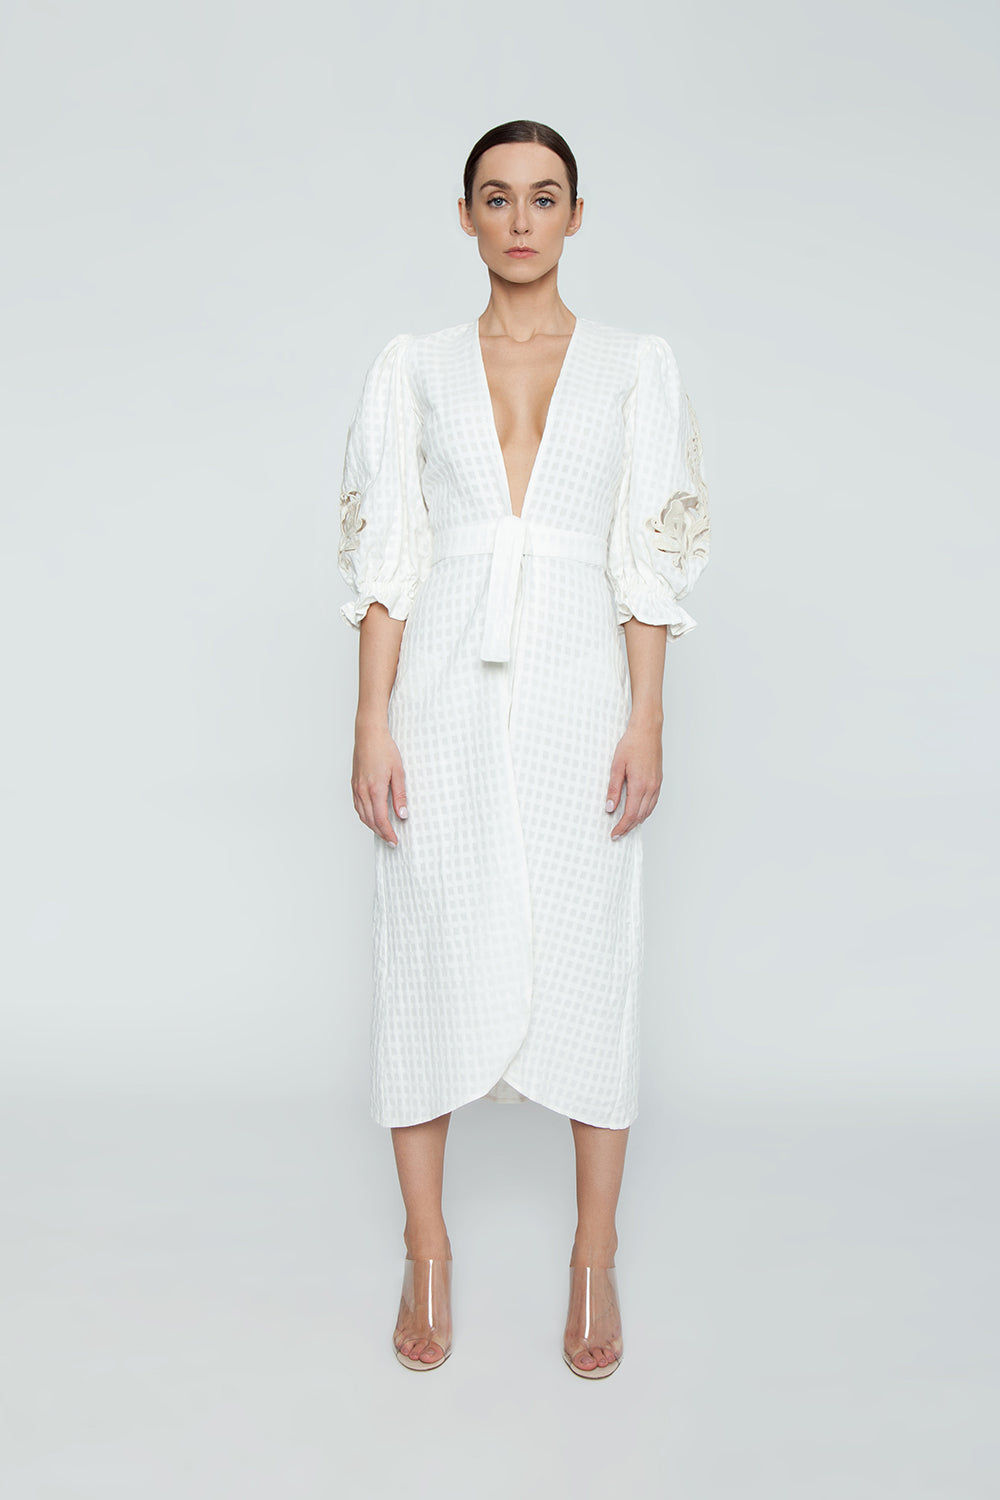 ADRIANA DEGREAS Cotton Embroidery Long Robe Cover-Up - Off White Cover Up | Off White| Adriana Degreas Embroidery Long Robe - Off White Long sleeve robe Plunging neckline Embroidered long sleeve detail  Front tie detail  Front View